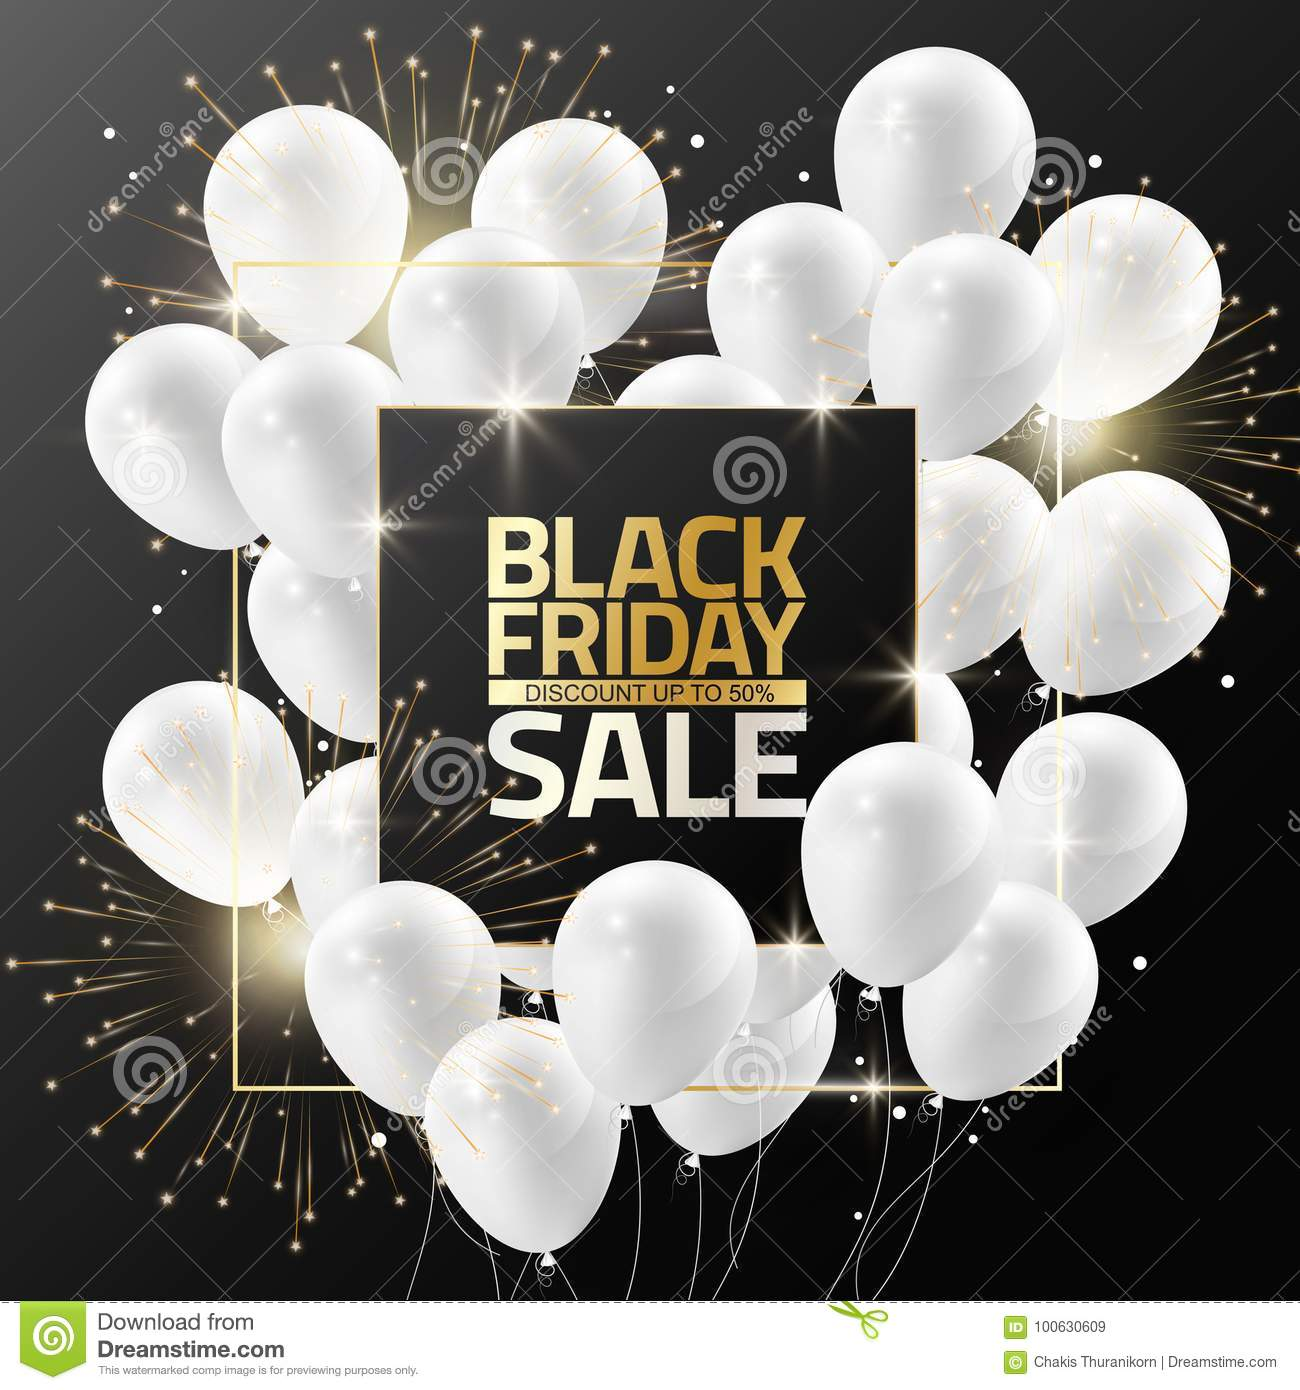 Black Friday sale on black frame with white balloons and firework for design template banner, Vector illustration